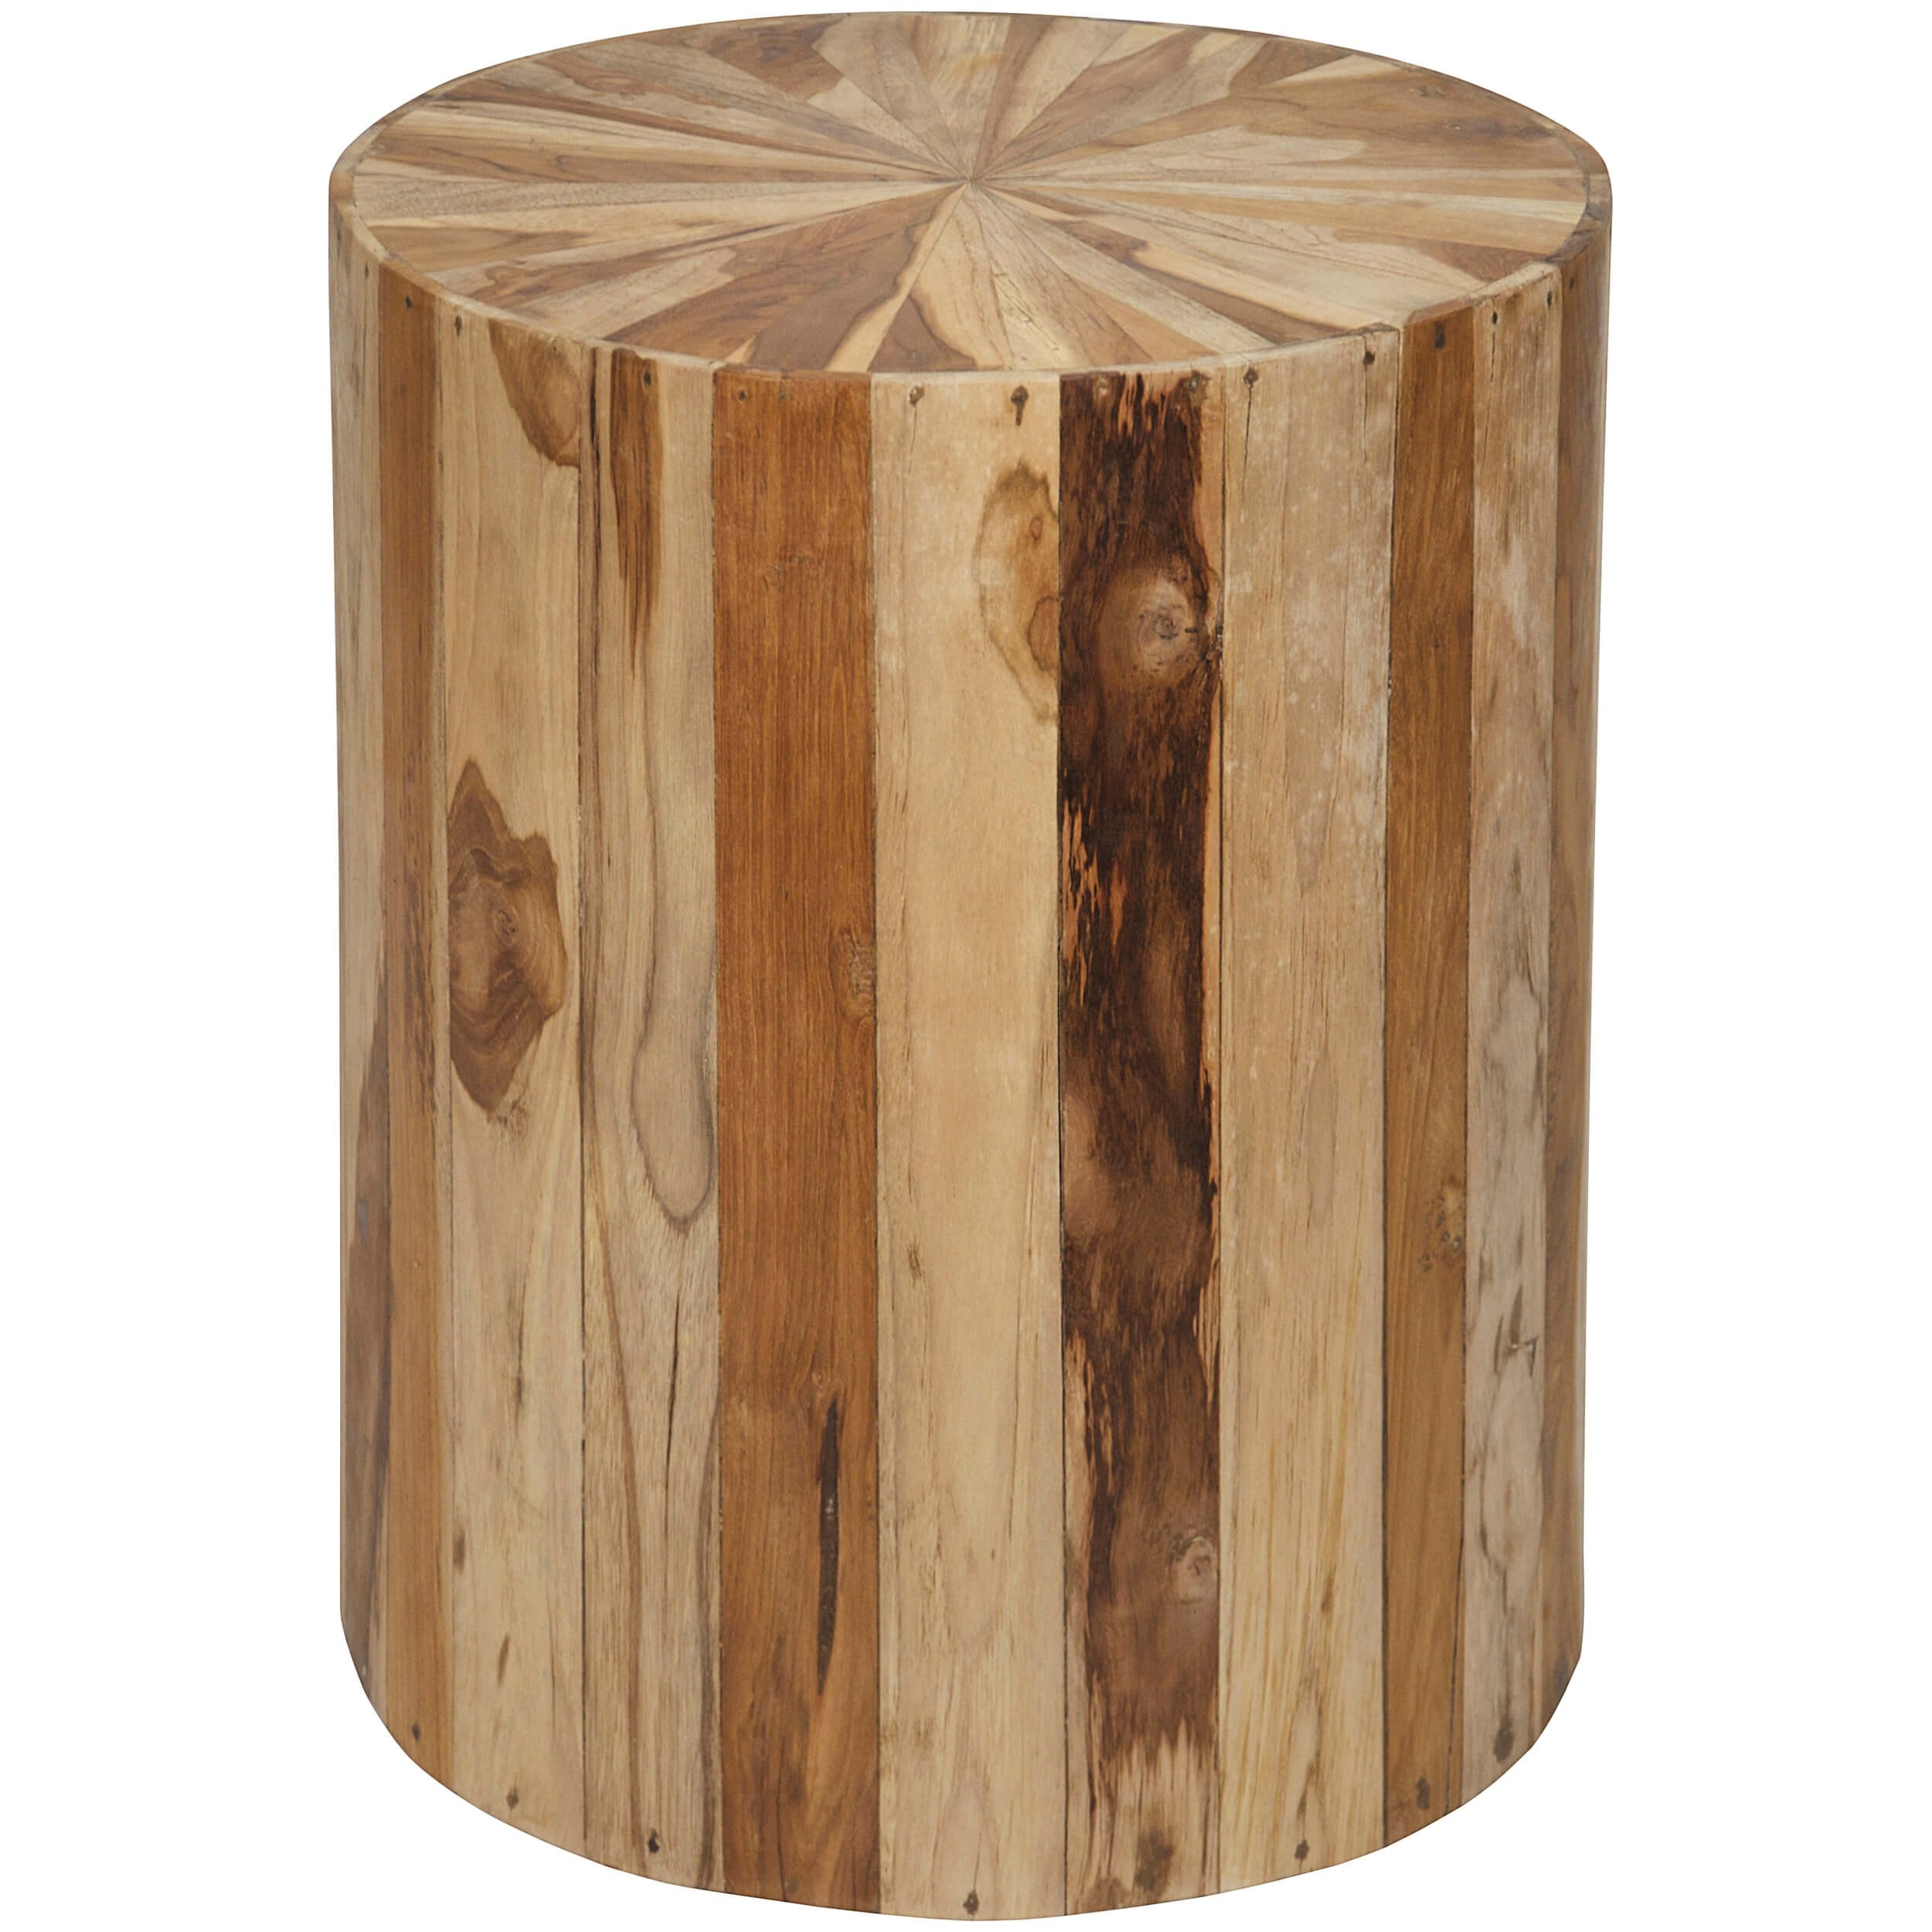 round teak wood side table end tables accent furniture dining stump corner hall stools outdoor patio cloth tablecloths chairs for balcony large antique coffee sauder shoal creek